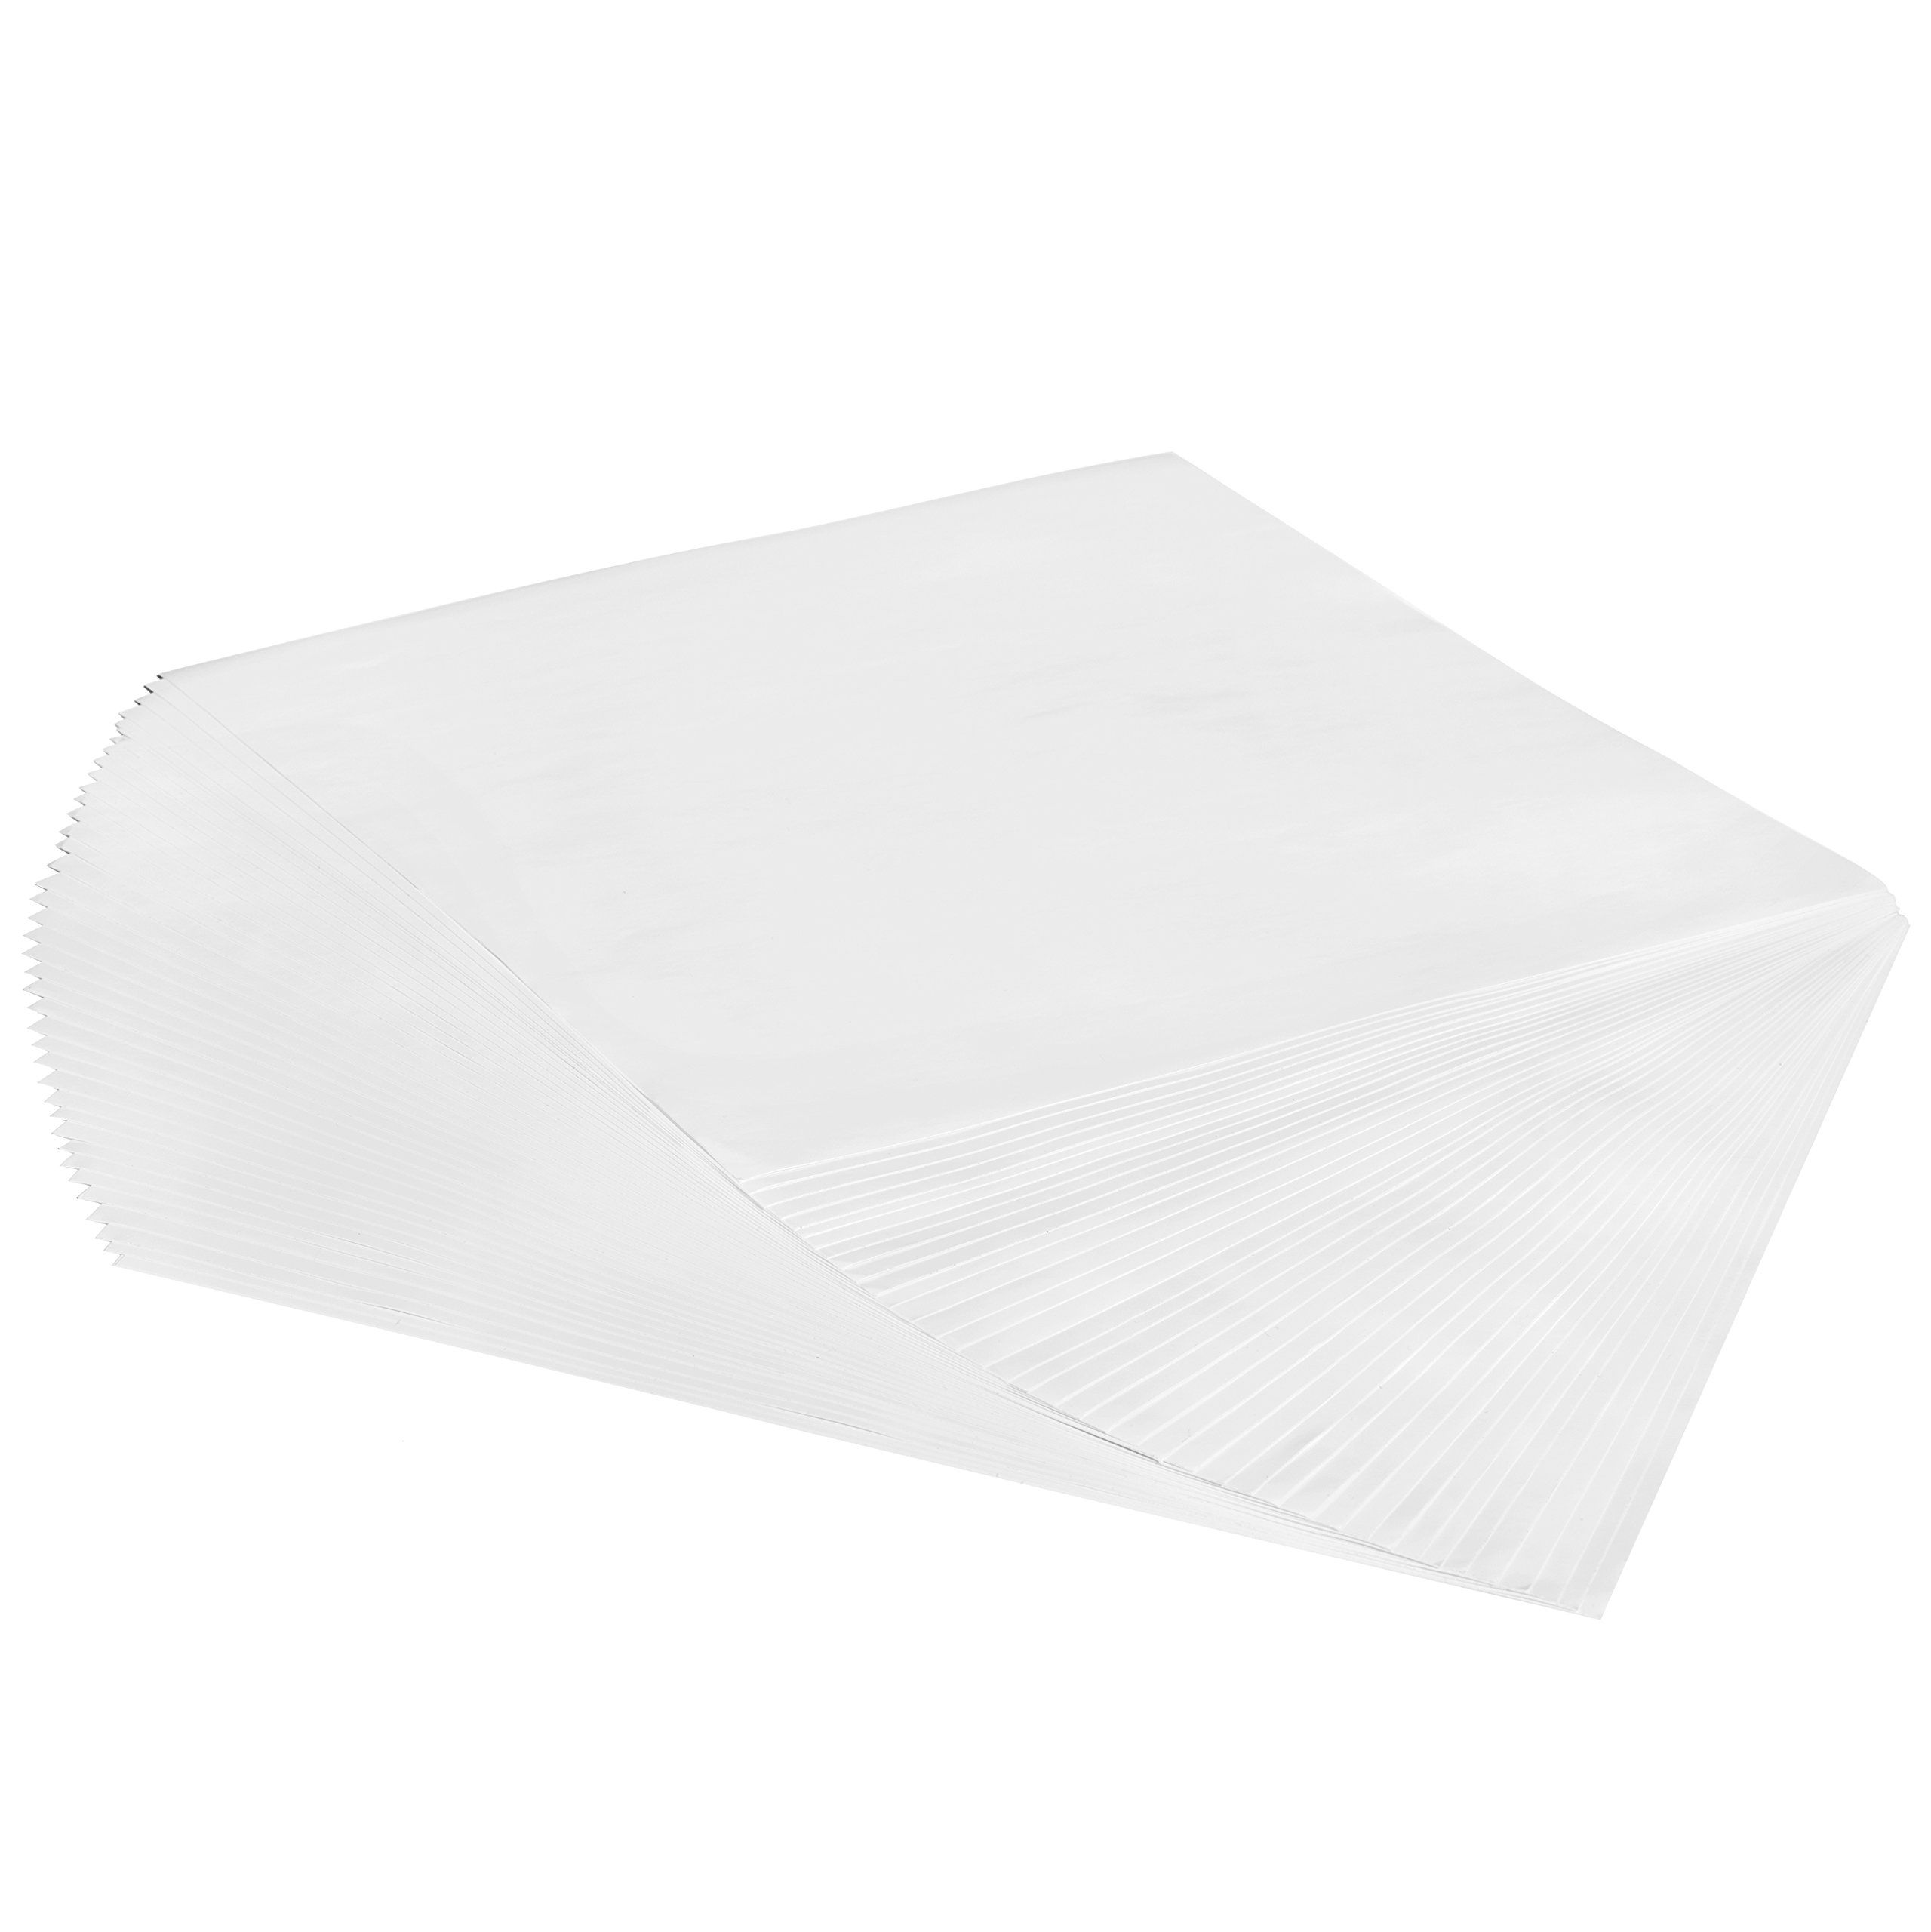 Permanent Matte White Vinyl Sheets Better Than Vinyl Rolls Ez Craft Usa 12 X 12 40 Matte Adhesive Backed Sheets Work Wi Vinyl Rolls Vinyl Sheets White Vinyl